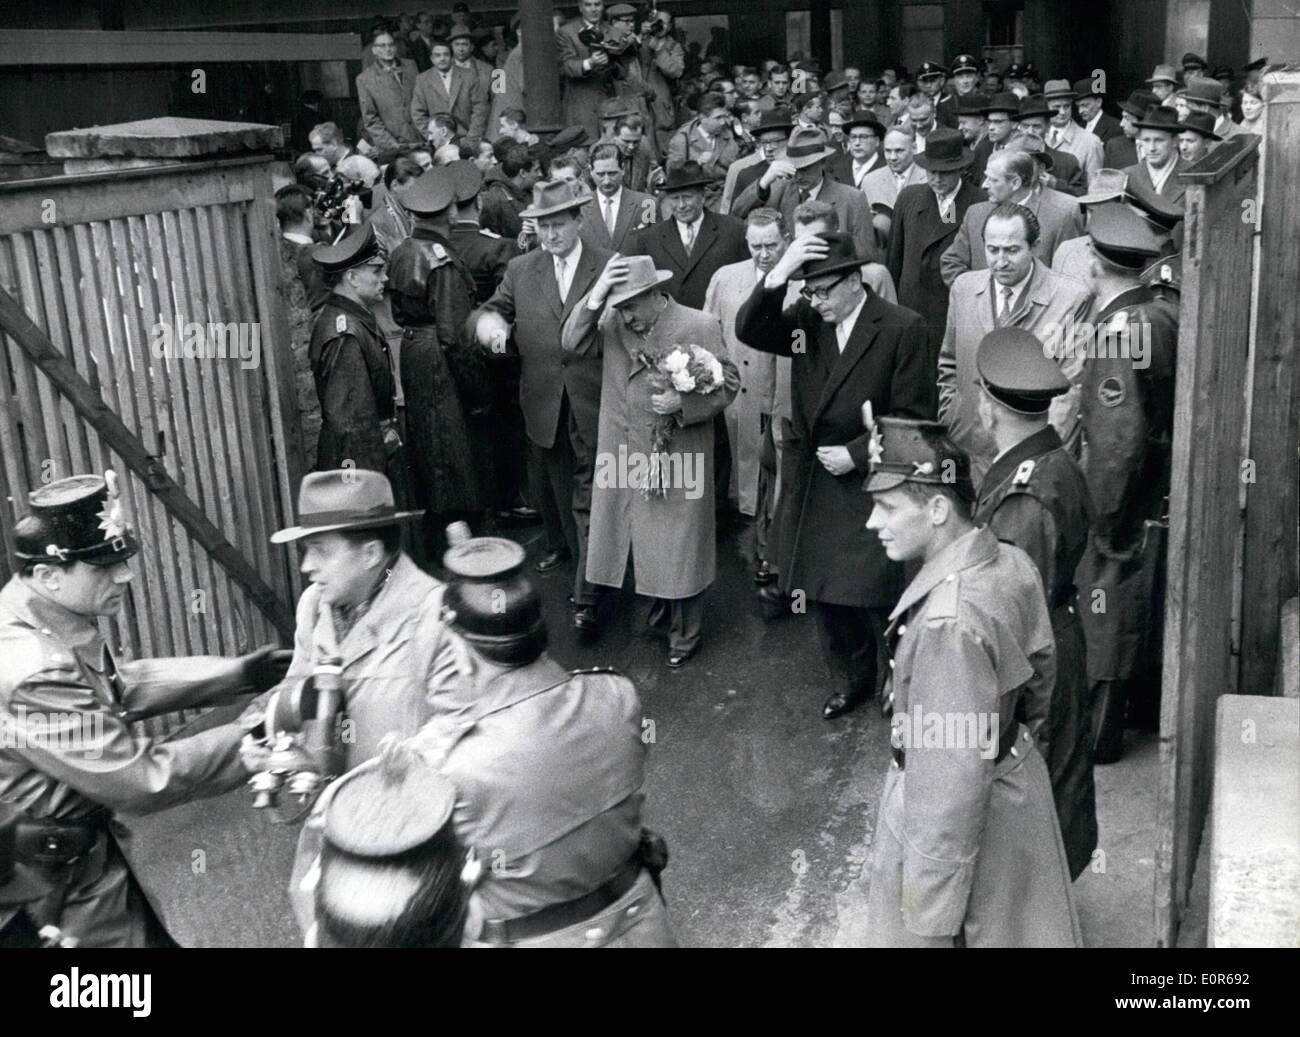 Apr. 04, 1958 - Tumult at Mikoyan visit at the Bonn station : The Soviet guests with Anastas Mikoyan were arriving at the Bonn central station, tumulteous incidents were occurring between the station police and some journalist. Out picture shows. A journalist led off by the police in front to of Mikoyen. In the background the Soviet ambassador Simrnow, anastas Mikojan and Foreign minister Heinrich Von Beentano. (From left to right side) - Stock Image